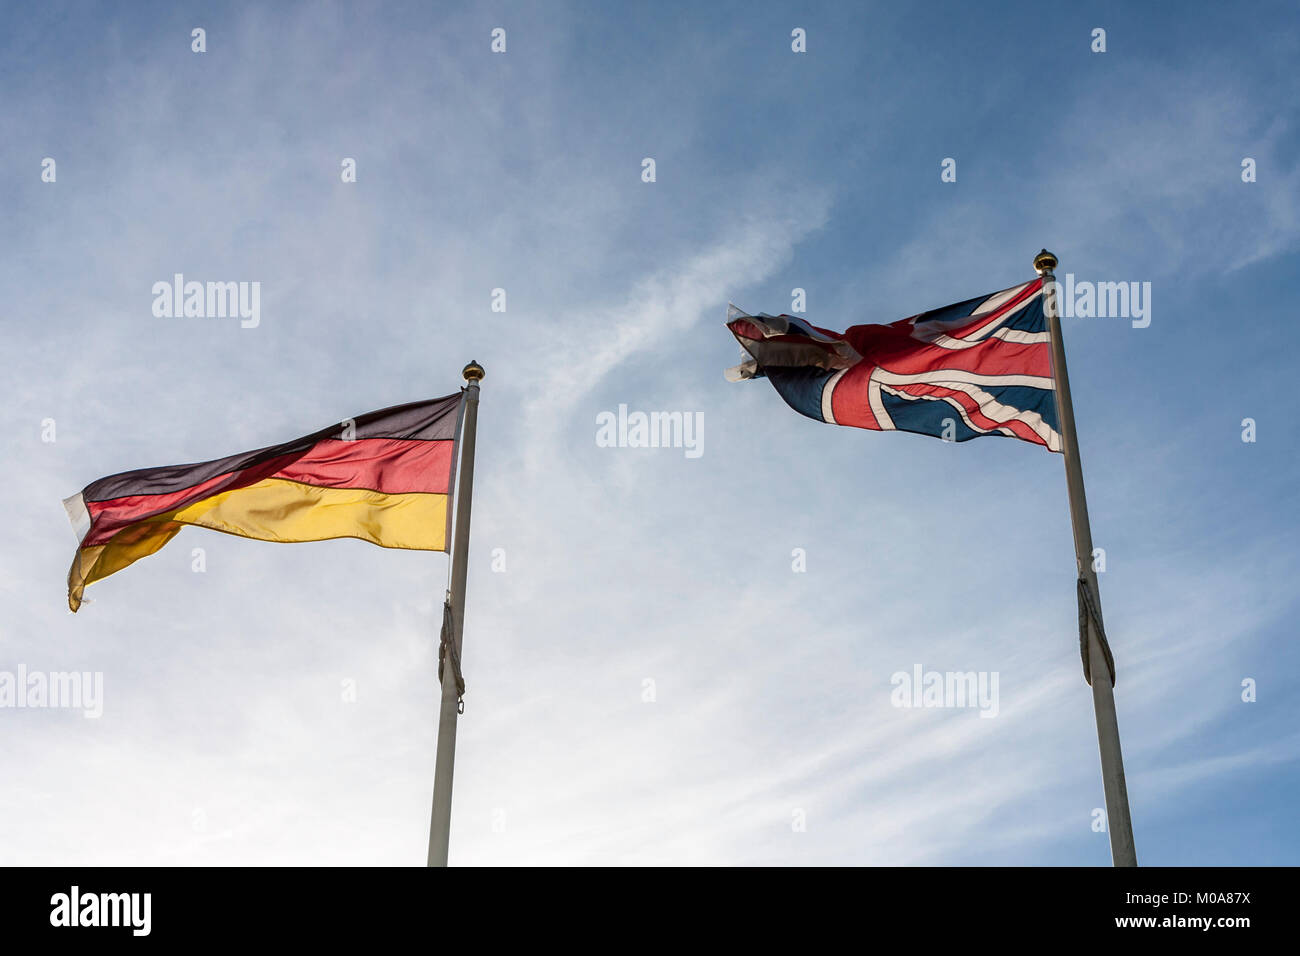 German Flag and UK Flag fly side by side in the breeze - Stock Image